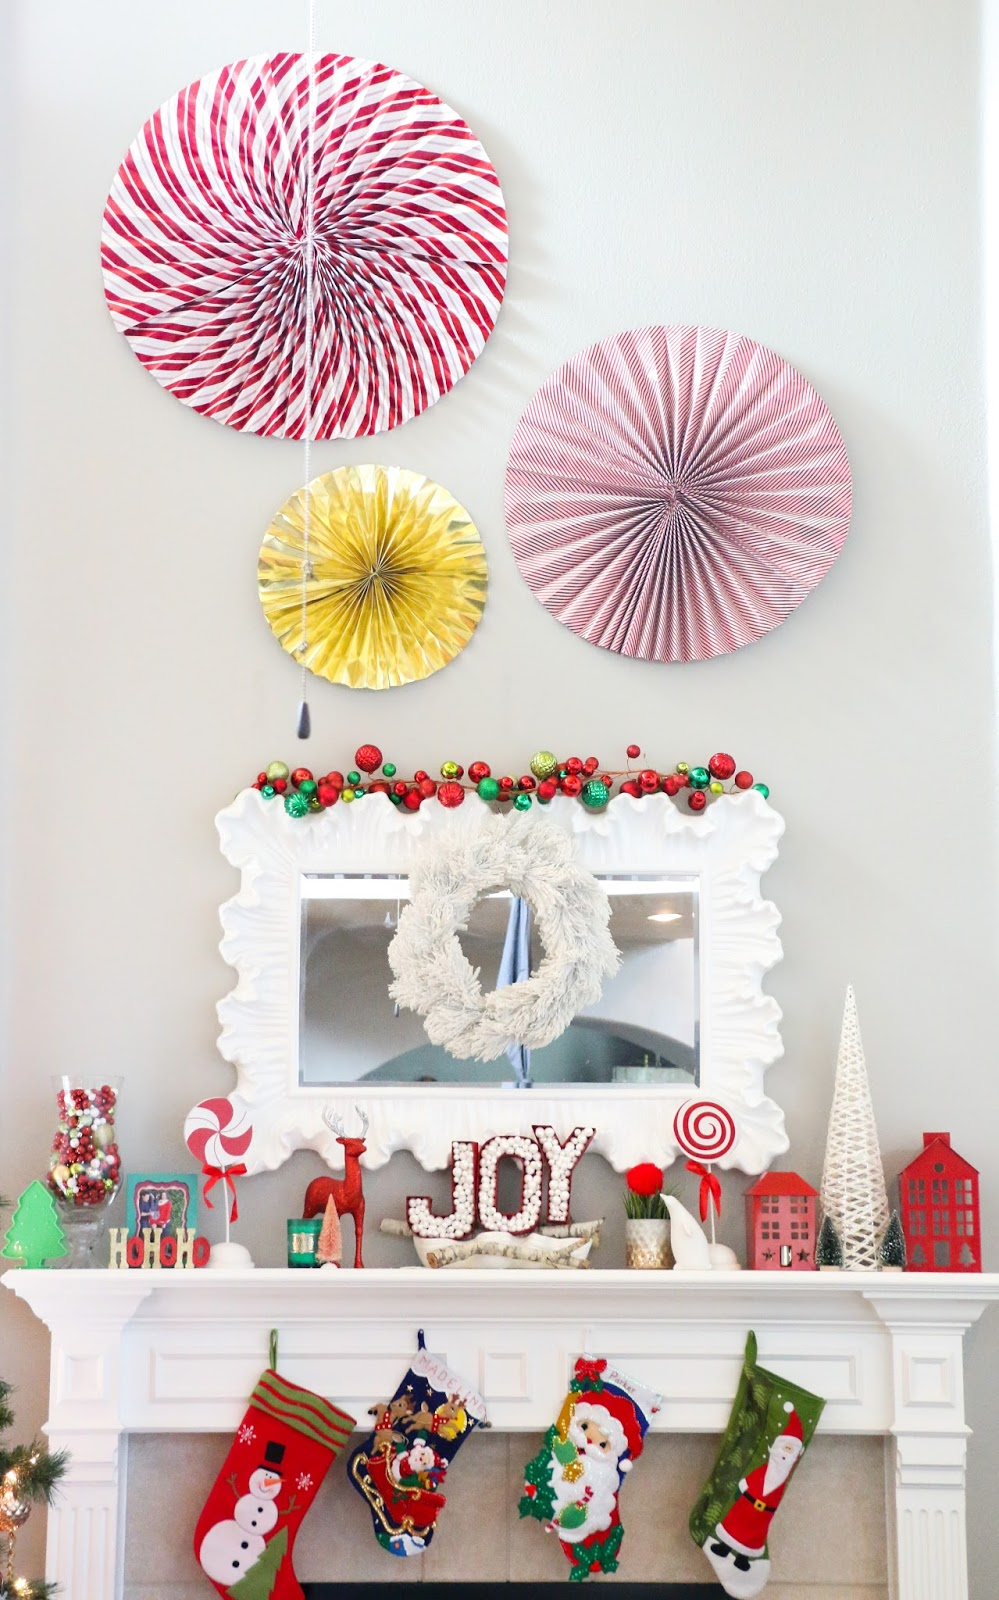 Superb Craft It   5 Unexpected Ways To Use Wrapping Paper At Christmas   A Kailo  Chic Life Good Looking